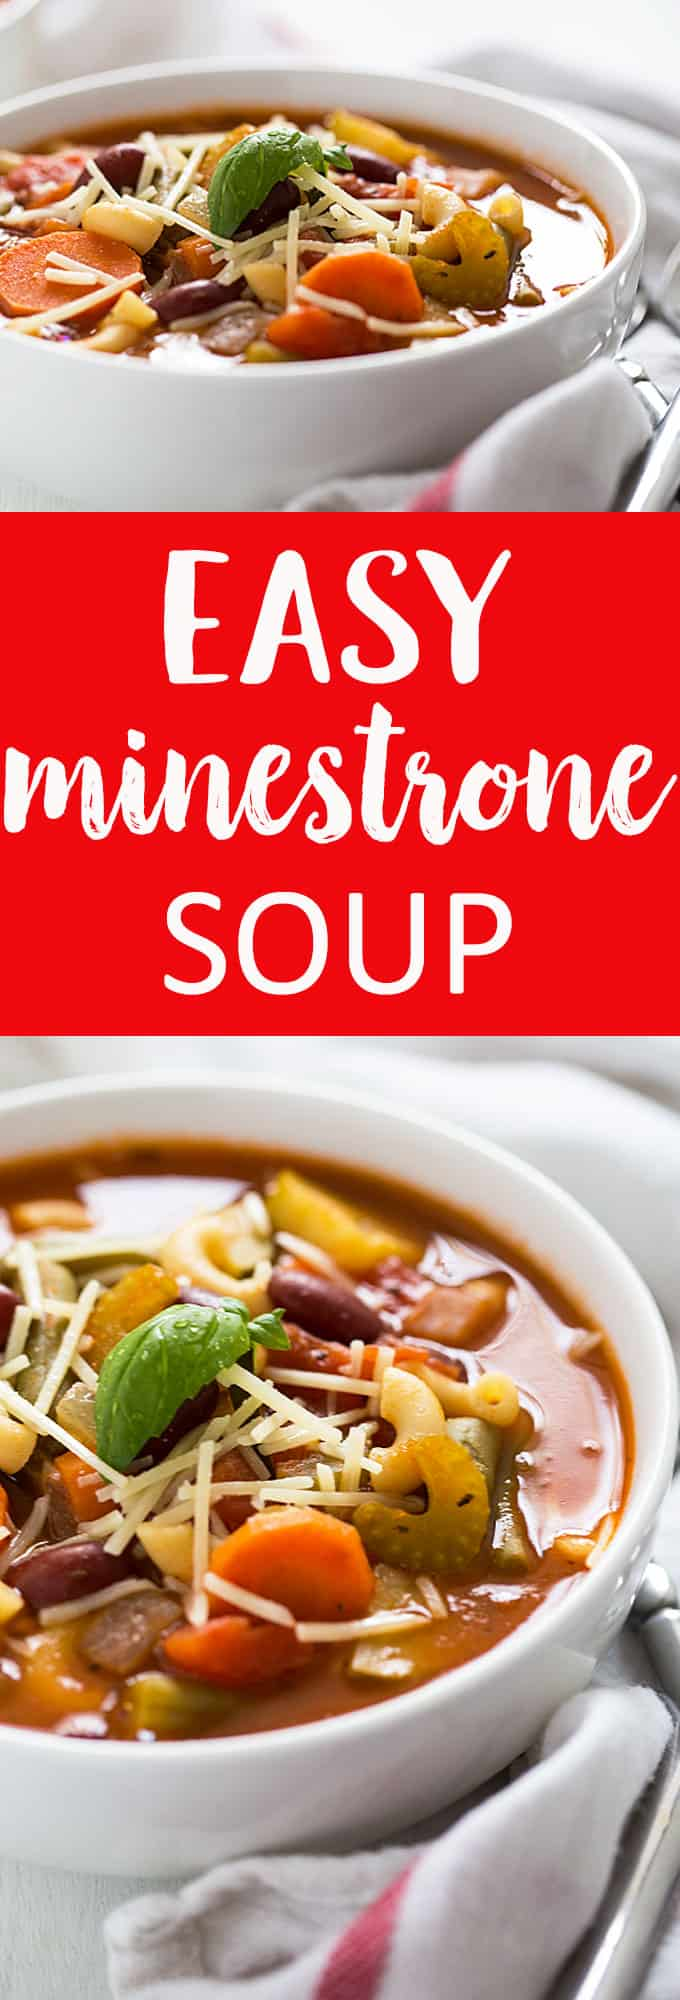 Easy Minestrone Soup chock full of veggies that comes together in just 40 minutes!